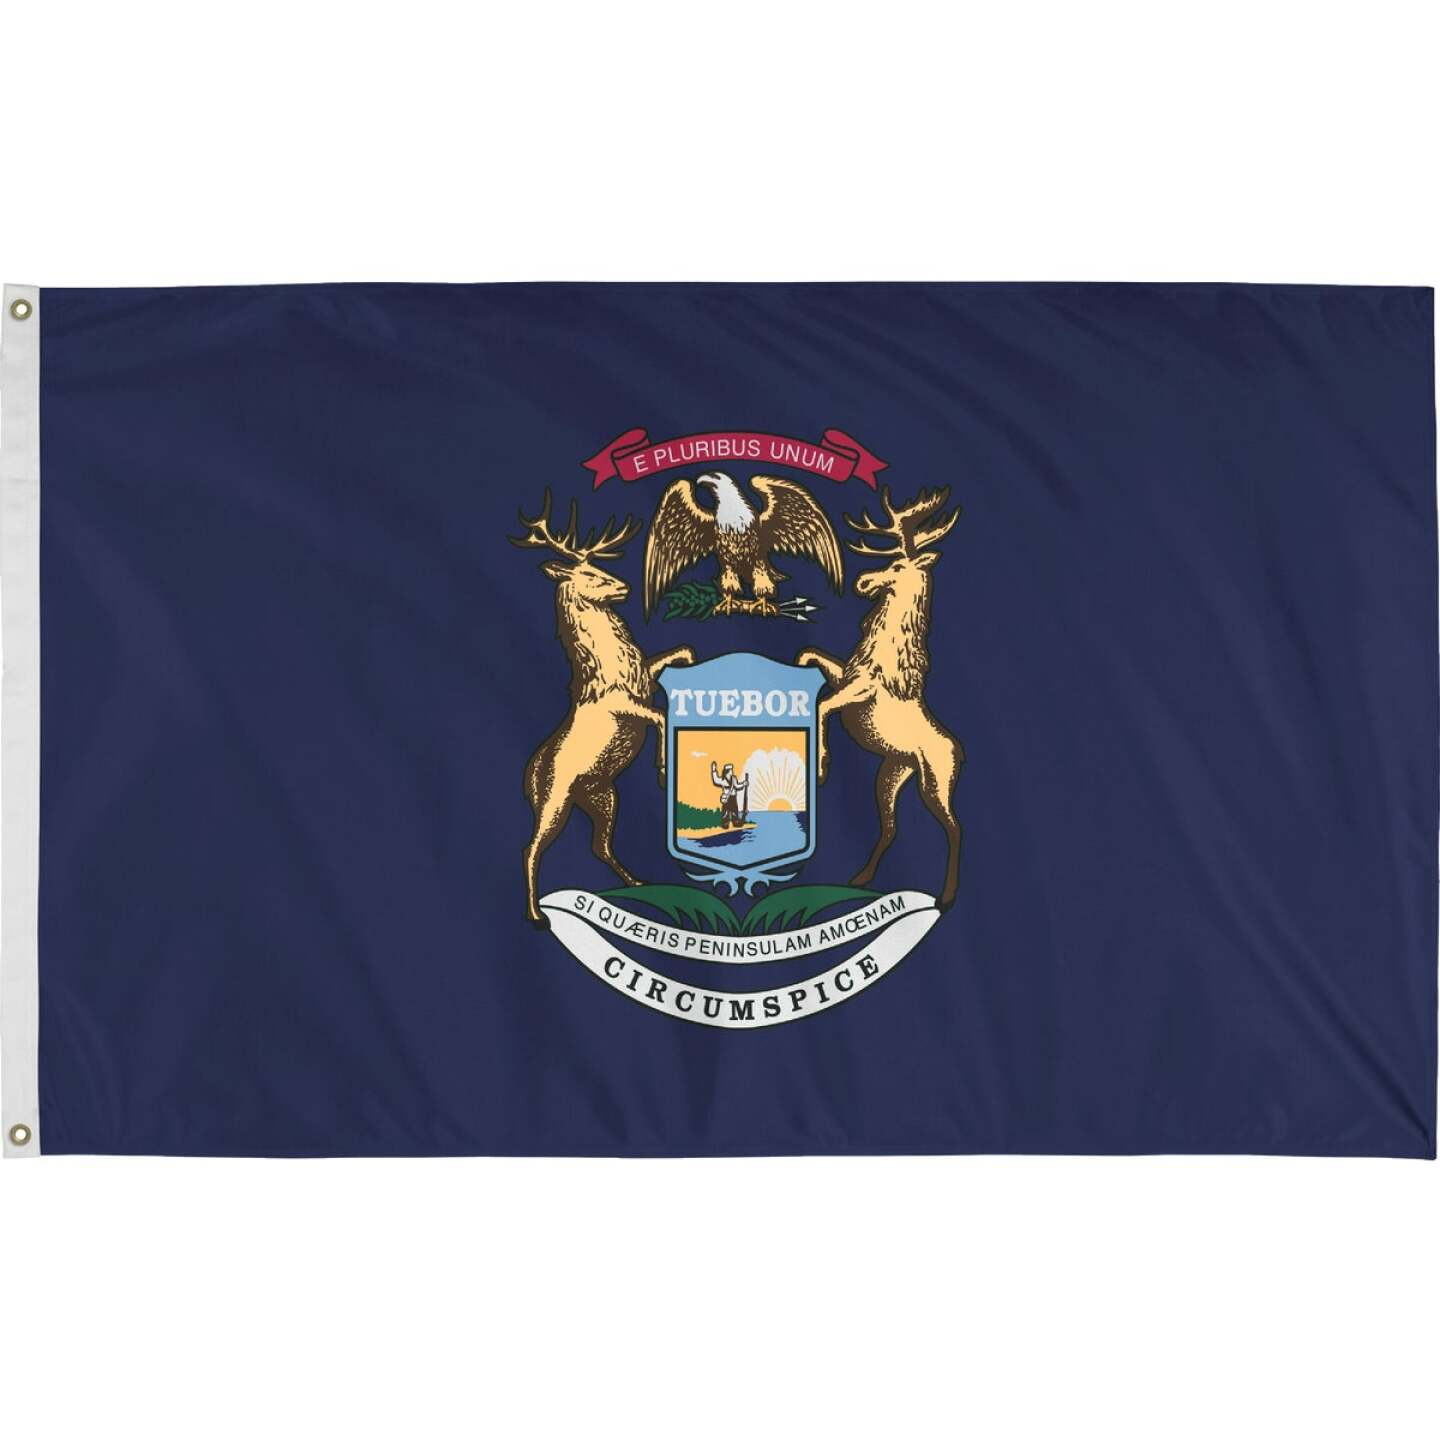 Valley Forge 3 Ft. x 5 Ft. Nylon Michigan State Flag Image 1